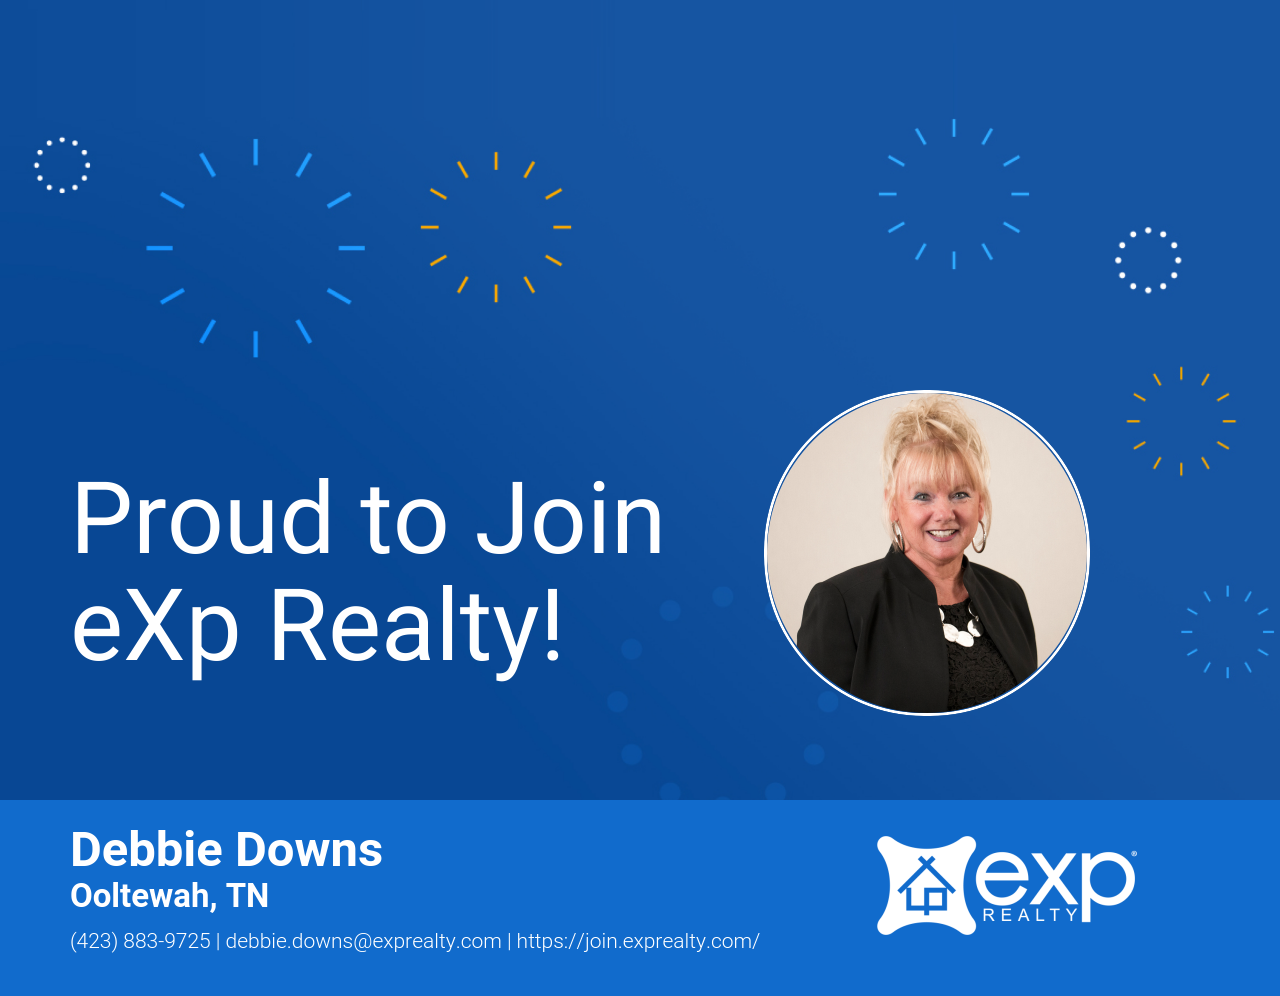 eXp Realty Welcomes Debbie Downs!